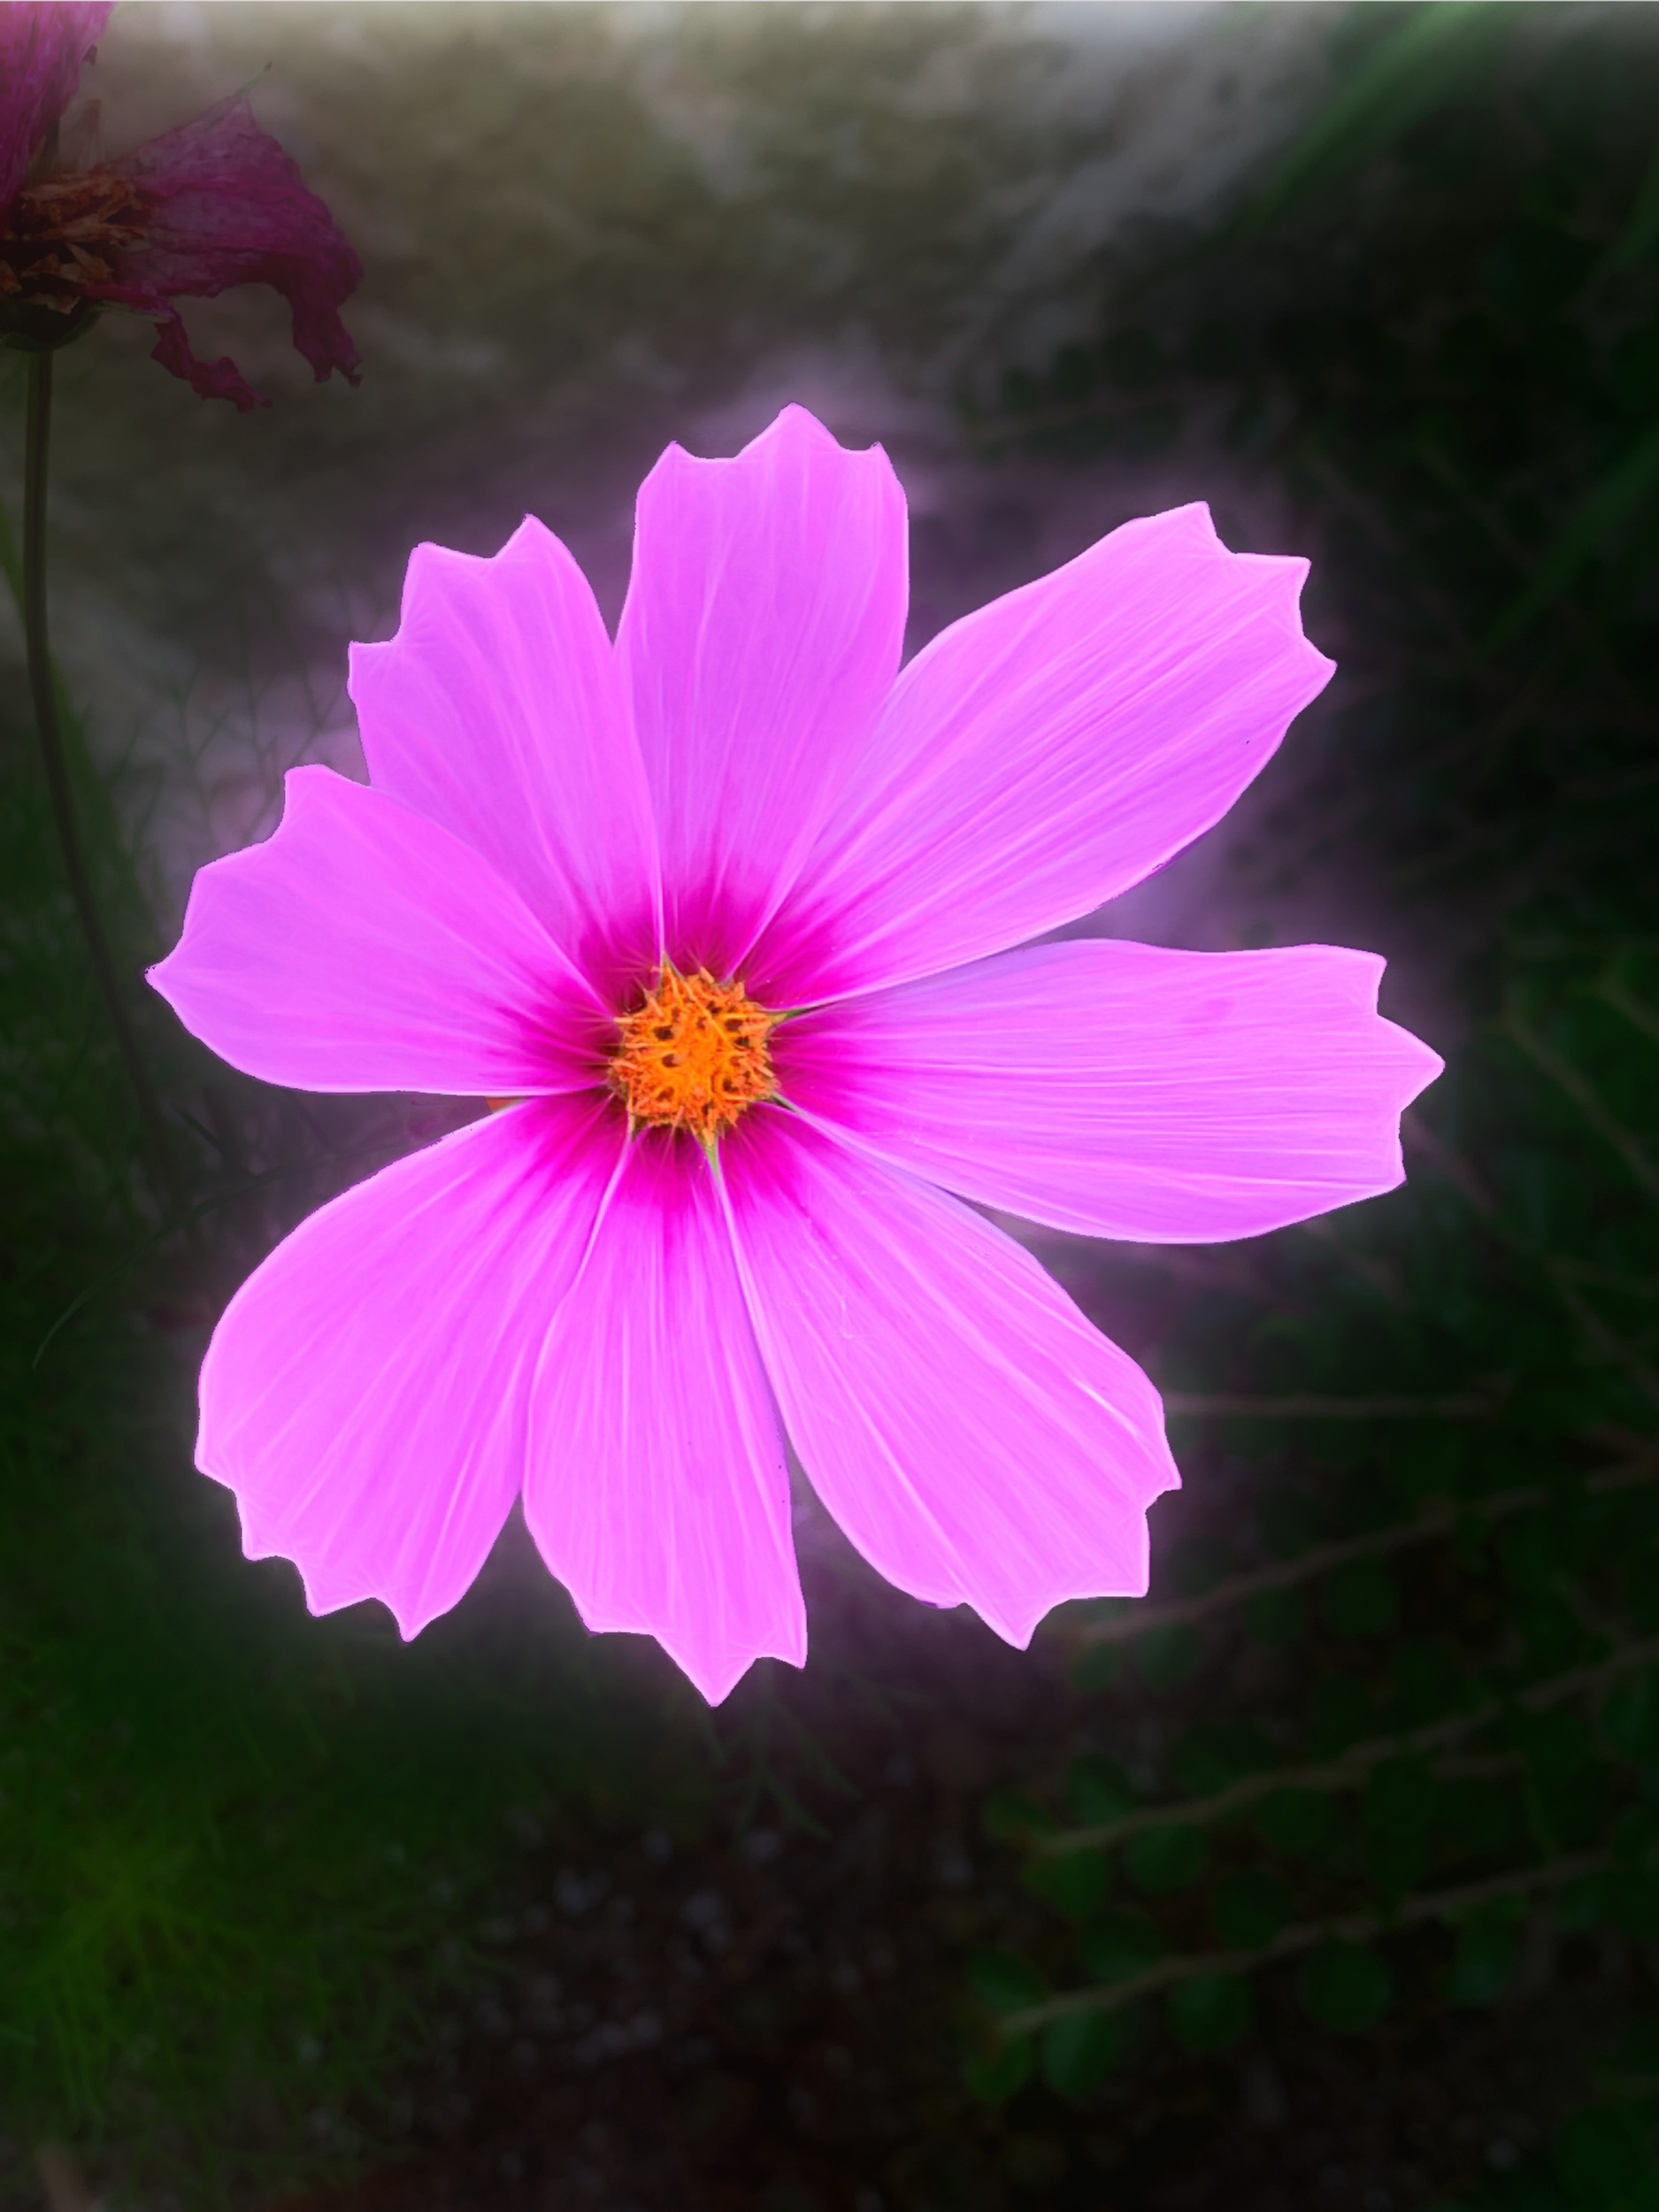 August 16, 2019 - Glorious cosmos (from my walk this morning).